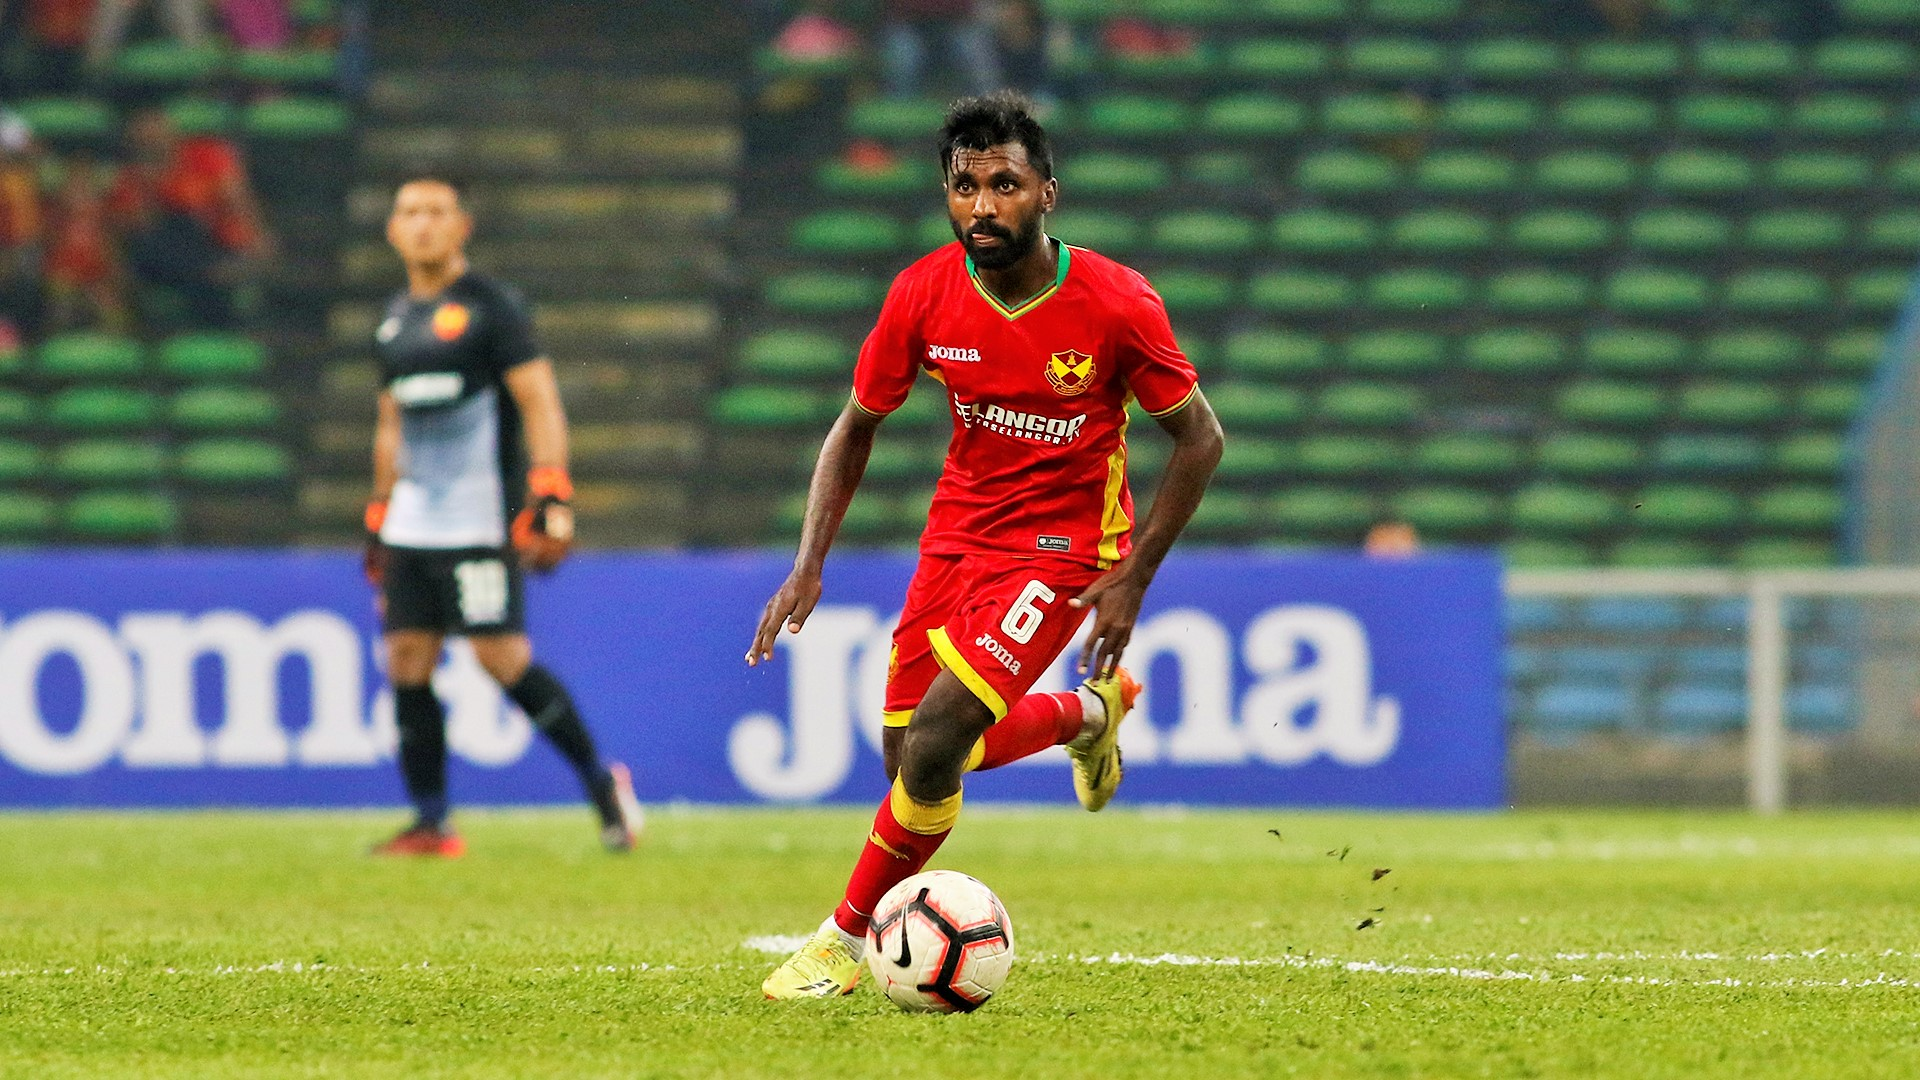 Sarkunan seeking greener pastures and improvements away from Selangor after disappointing 2020